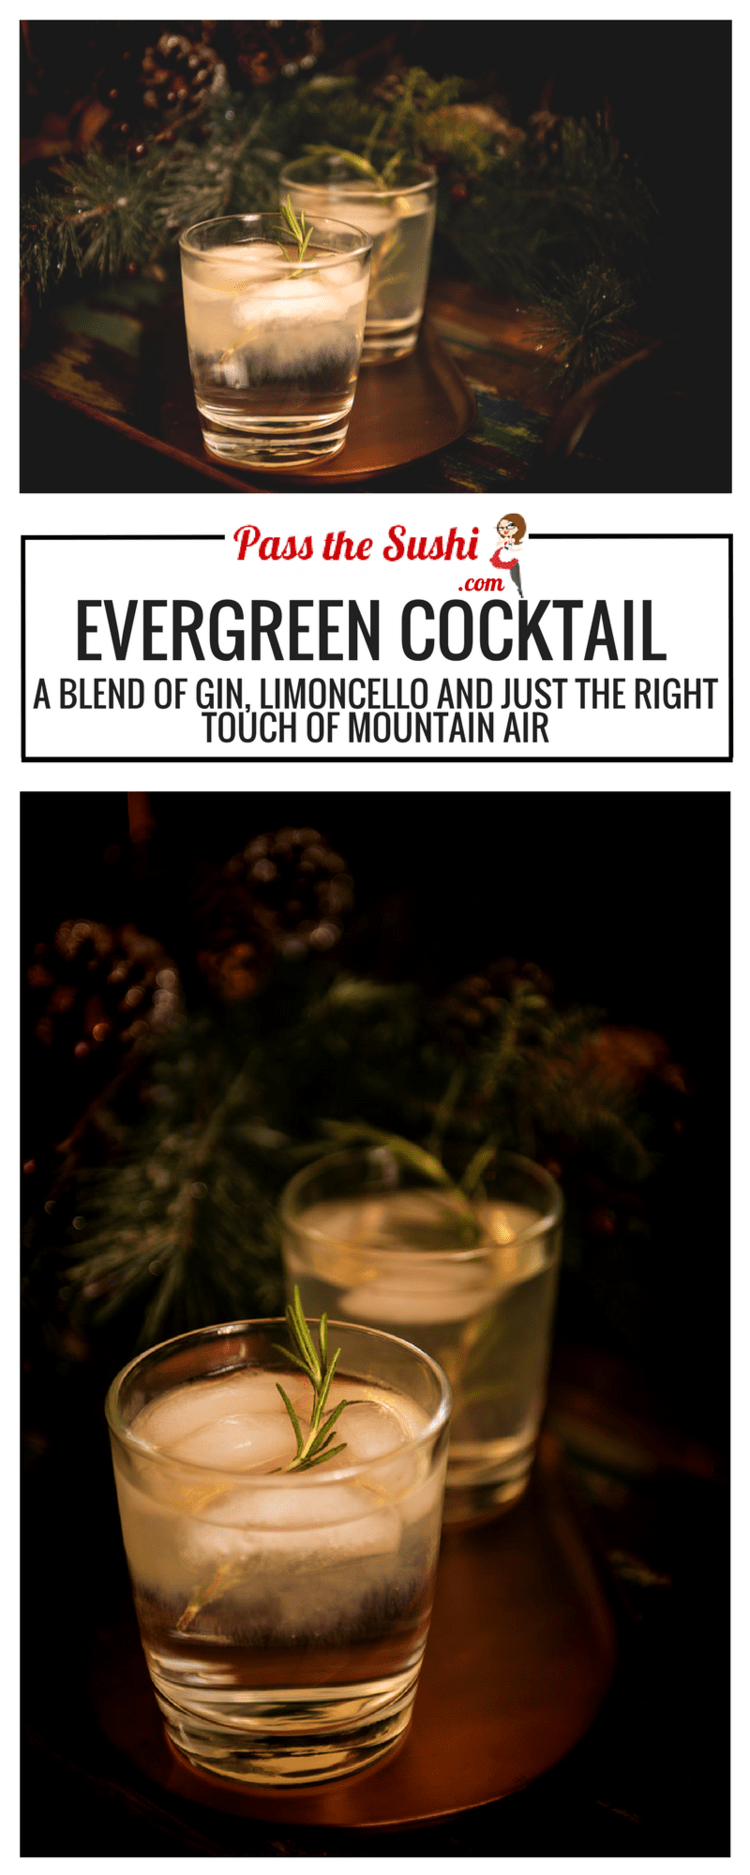 Evergreen Cocktail Recipe - a blend of gin, Limoncello and just the right touch of mountain air. Find on PasstheSushi.com #cocktail